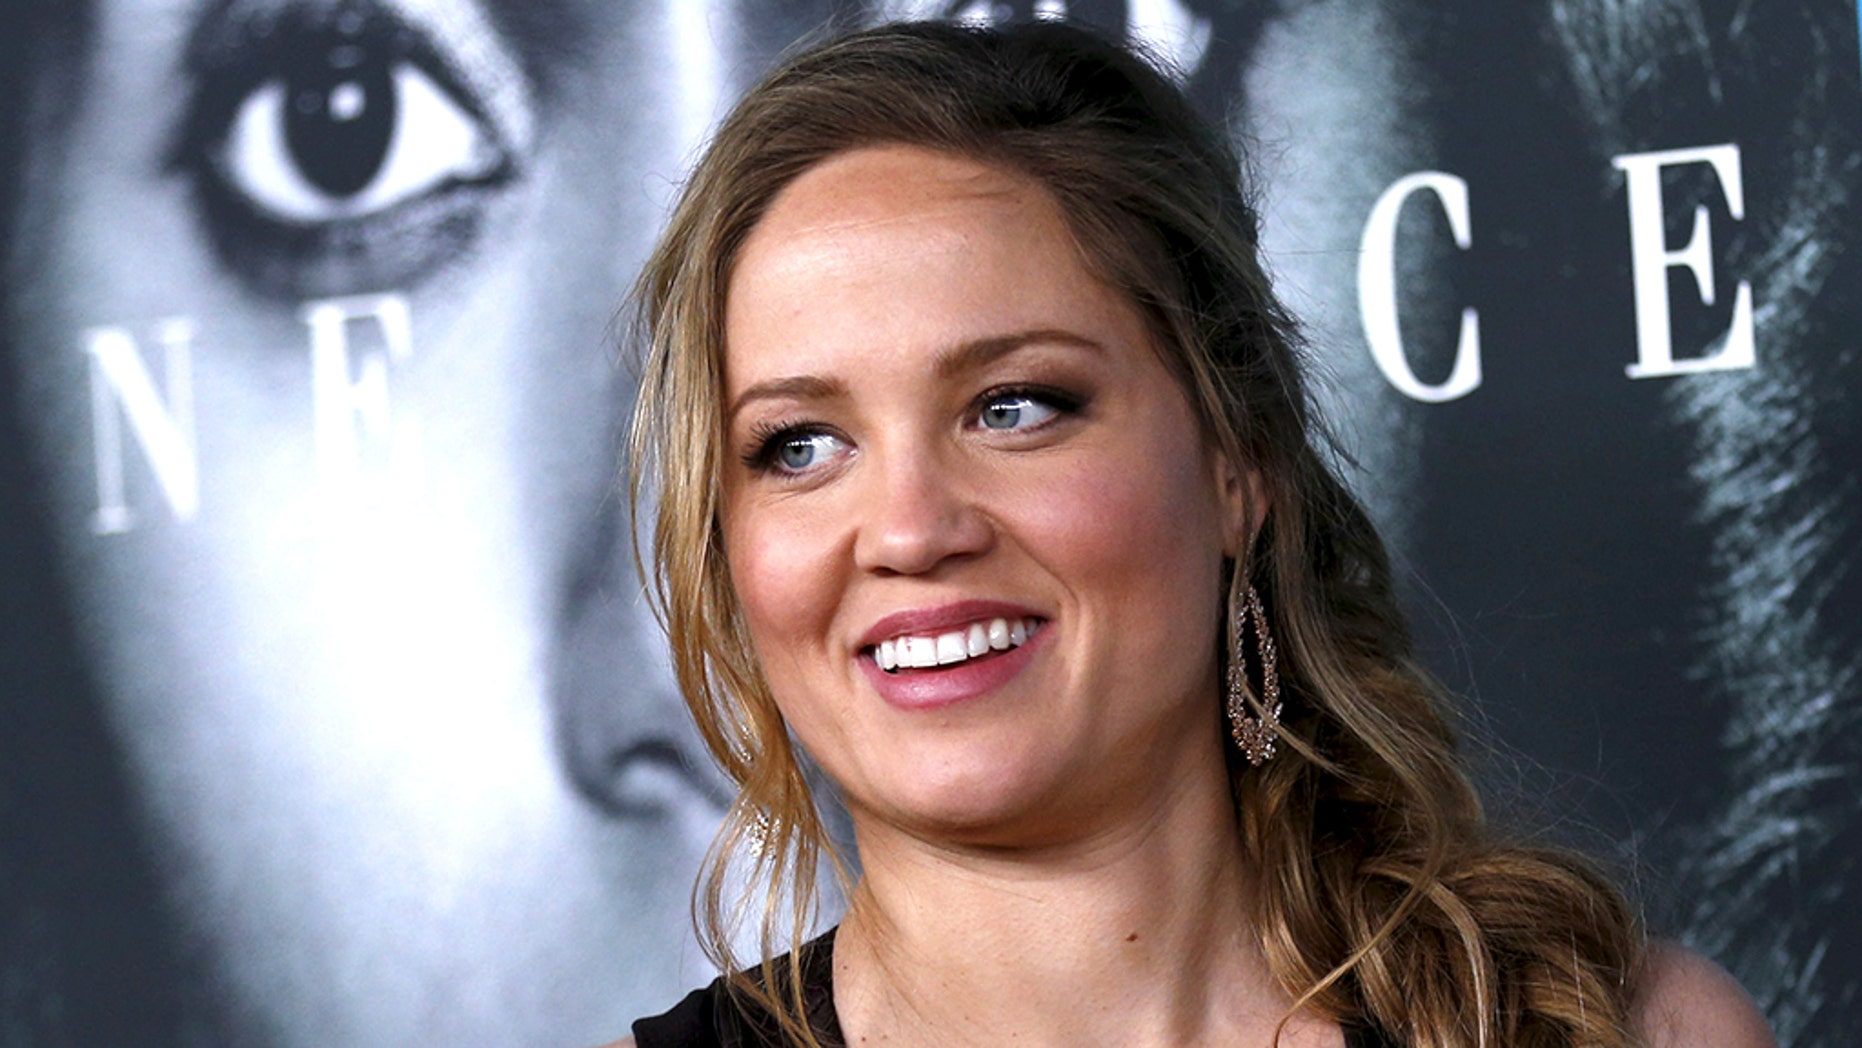 Erika Christensen said her parents never forced her to go to church but asked her to research Scientology and see how she felt about it.